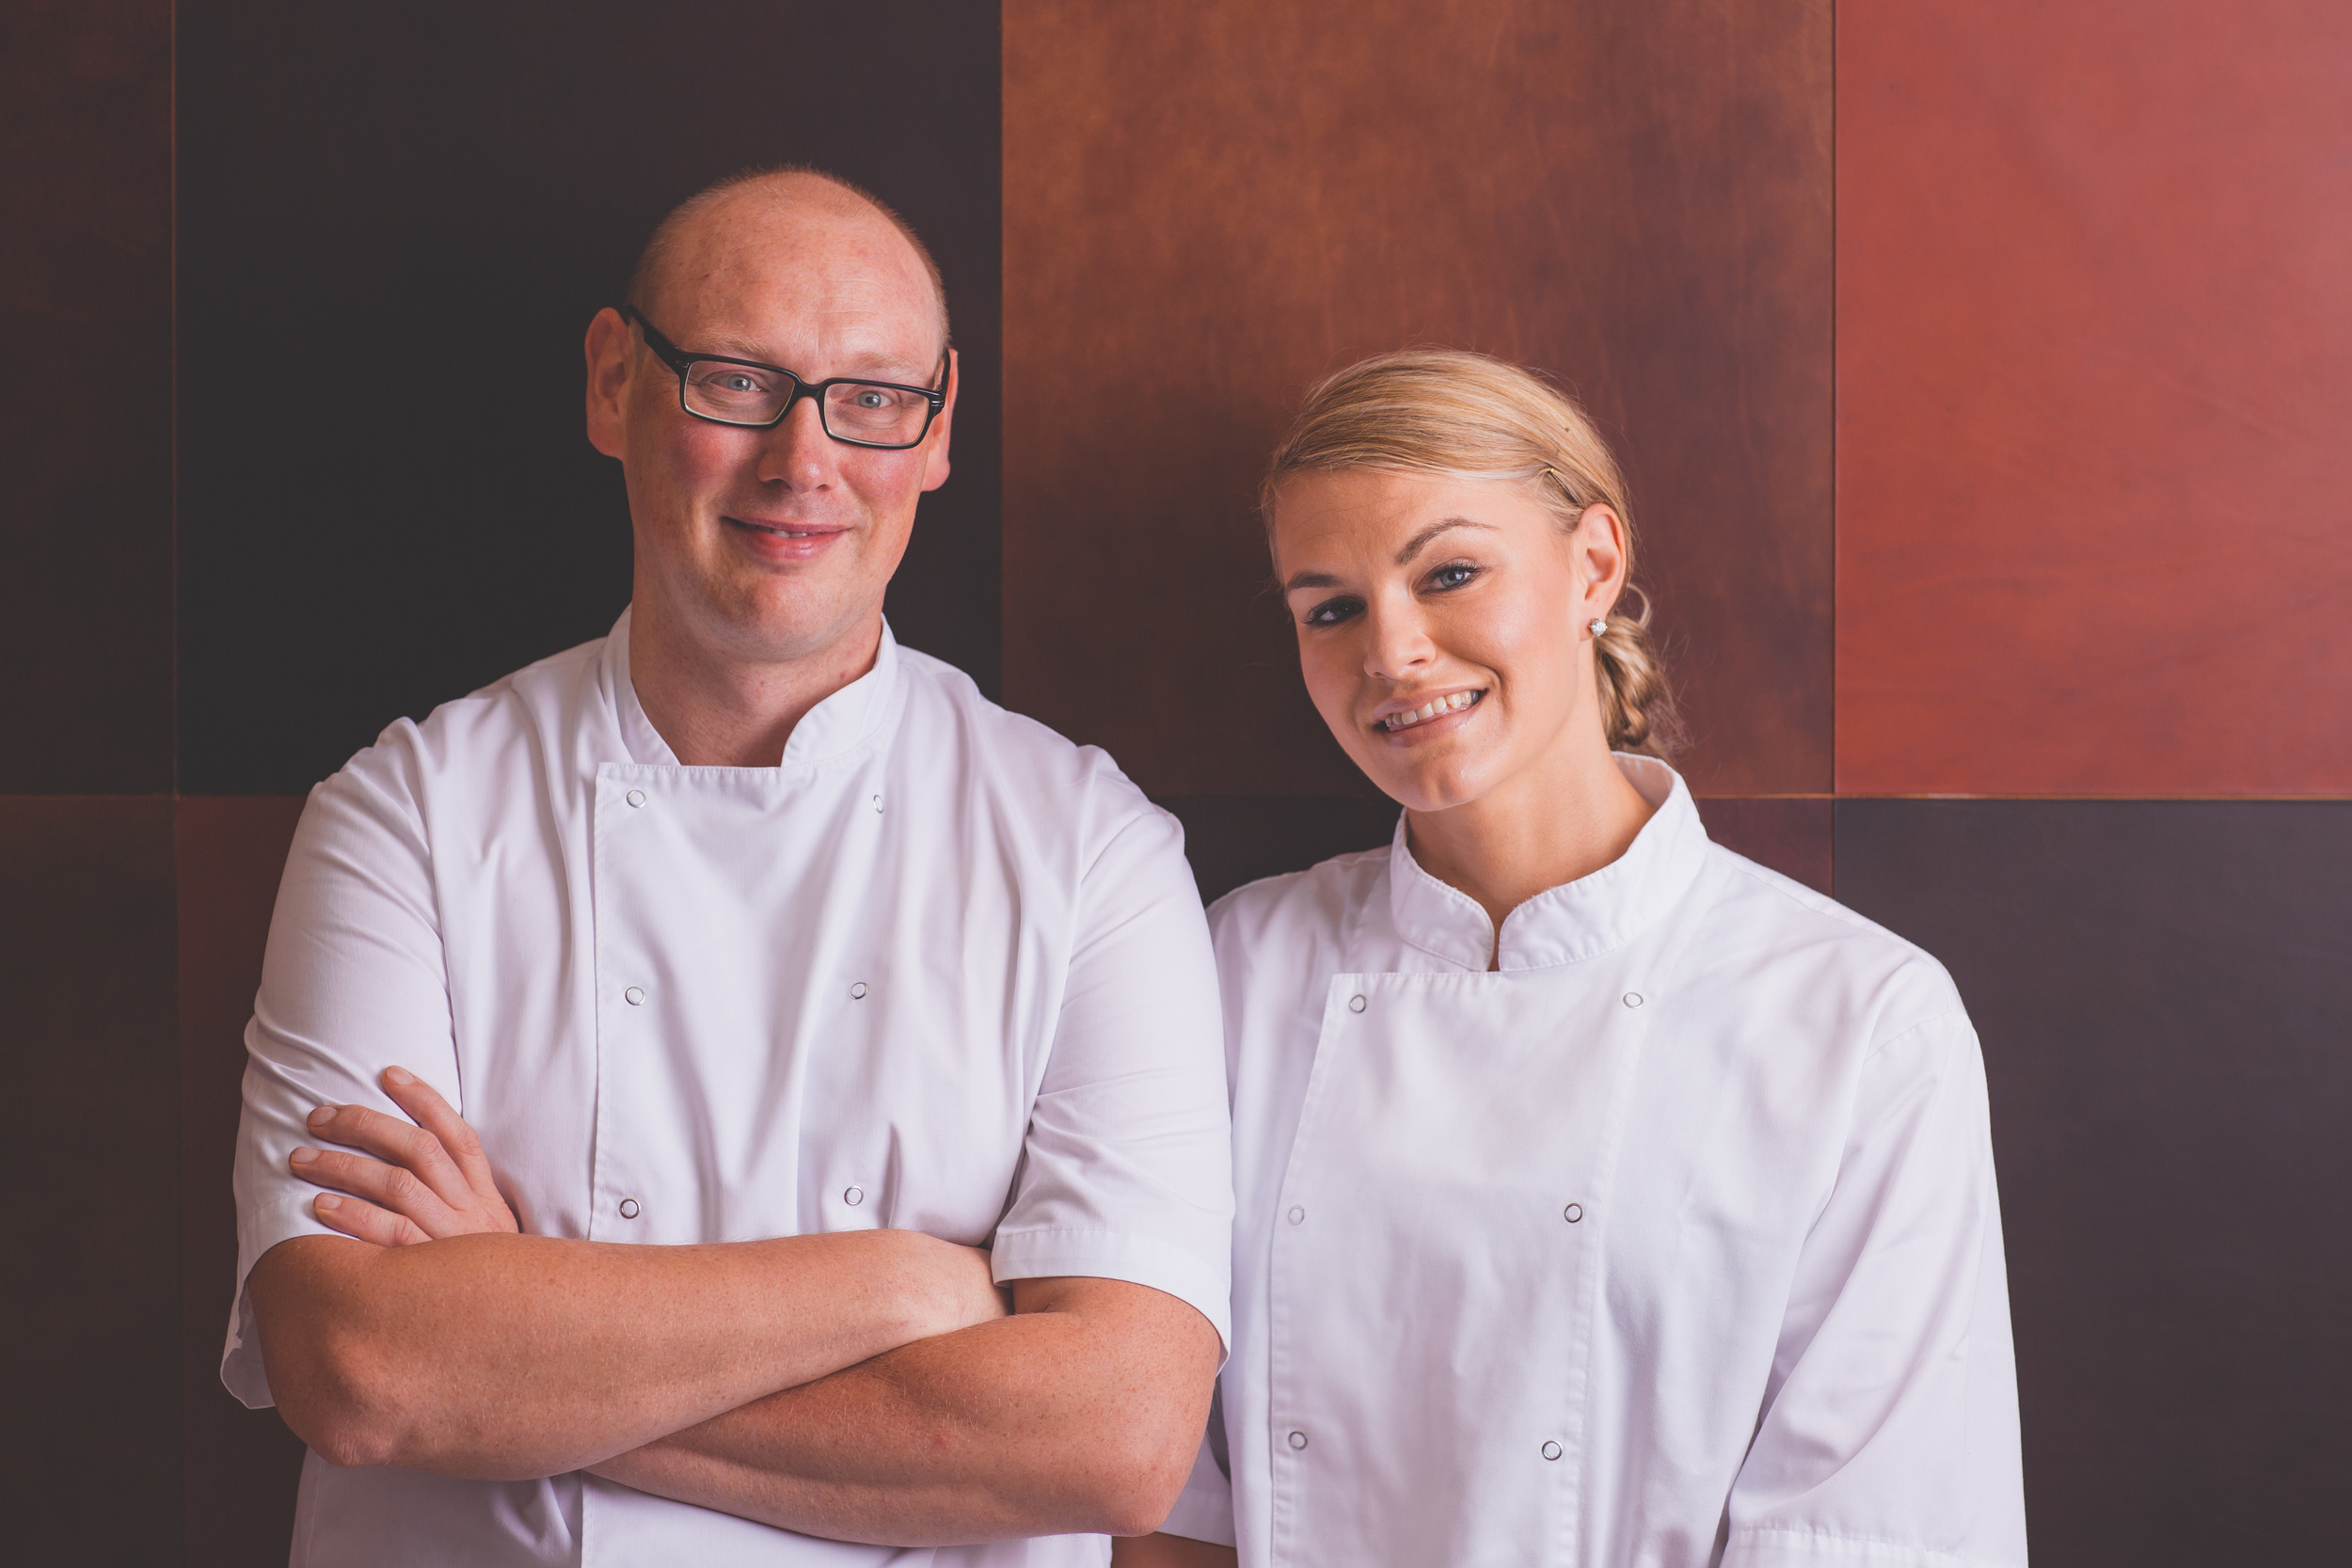 Jersey Restaurant Bohemia Ranked as One of Britain's Best in New Sunday Times 100 Top Restaurants